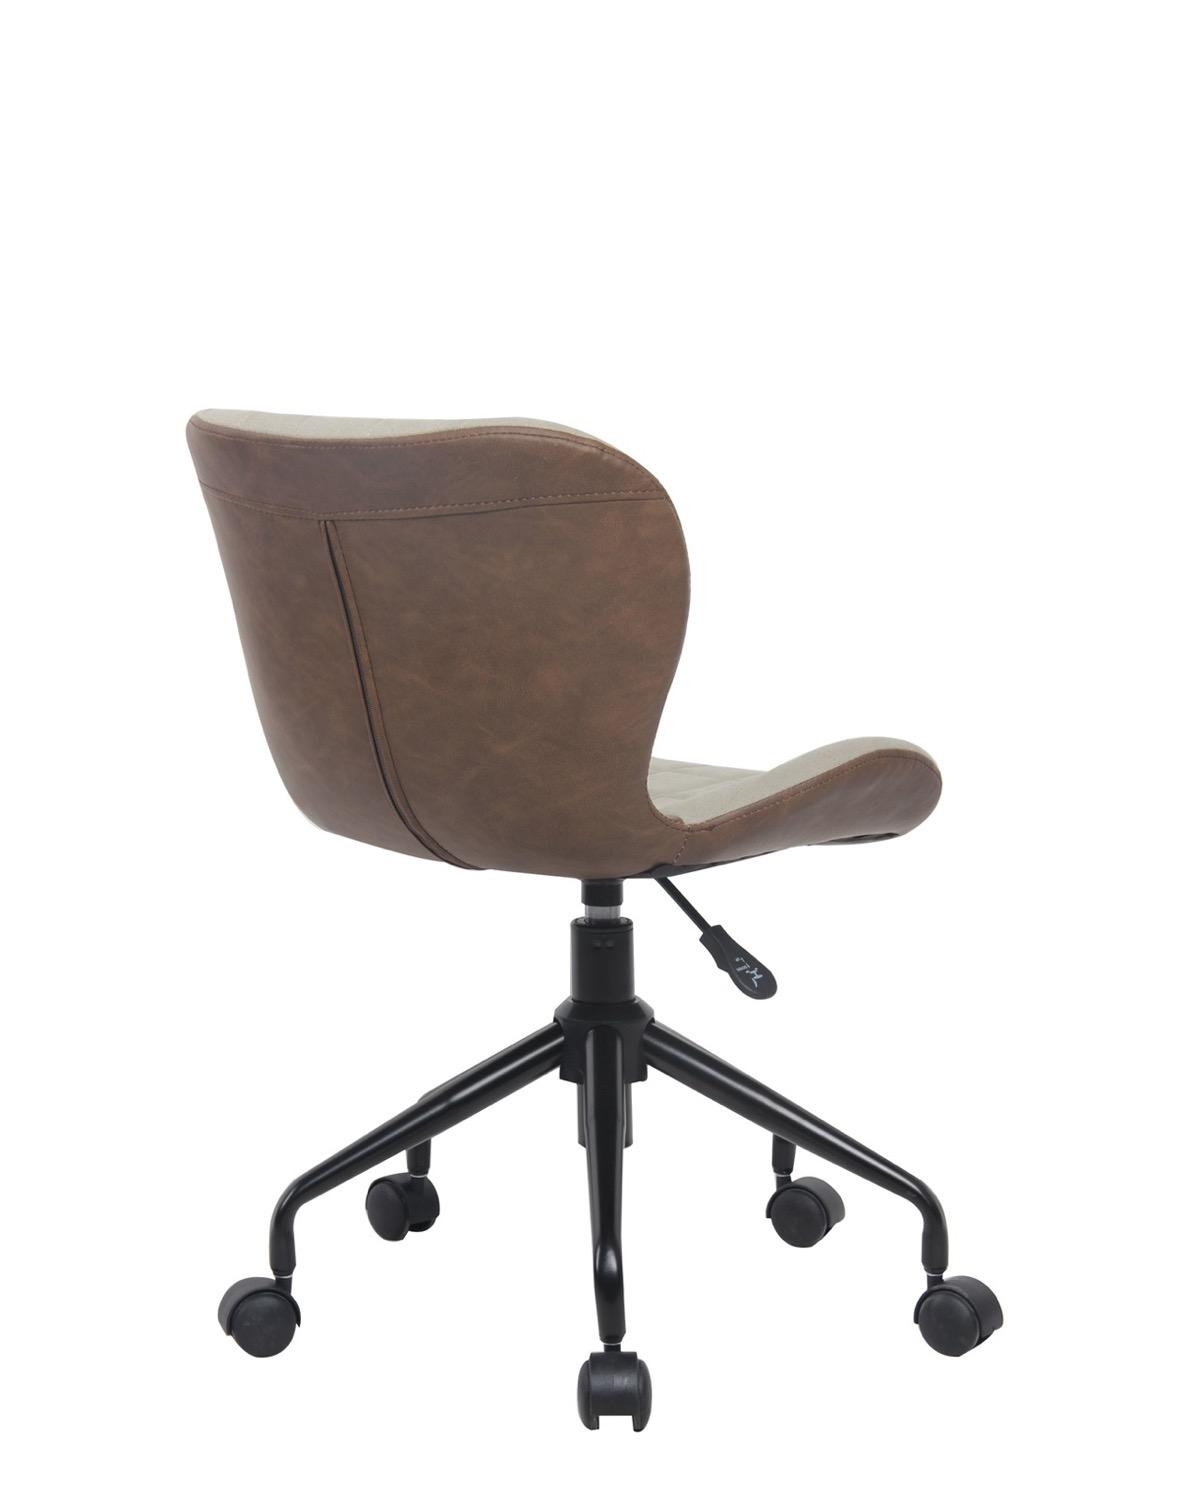 Cara chaise de bureau design pivotante for Chaise de bureau design